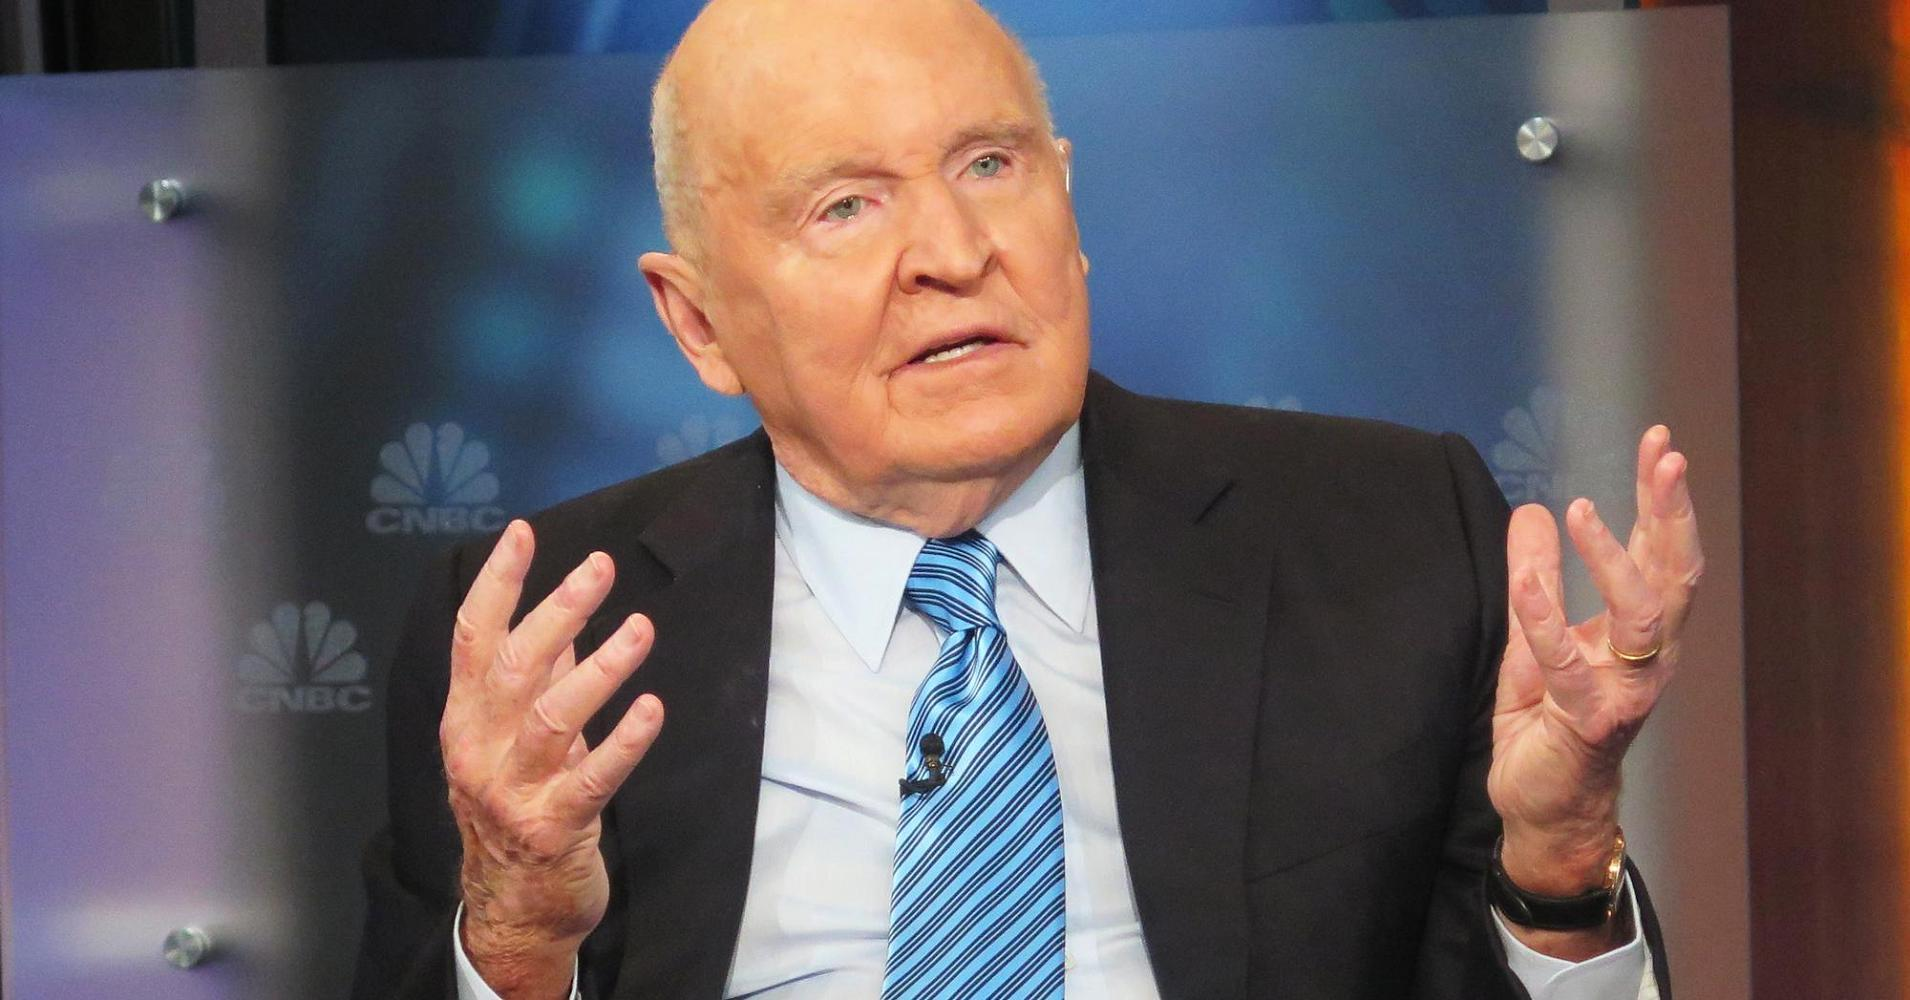 Jack Welch: Why financial services a 'changed game'